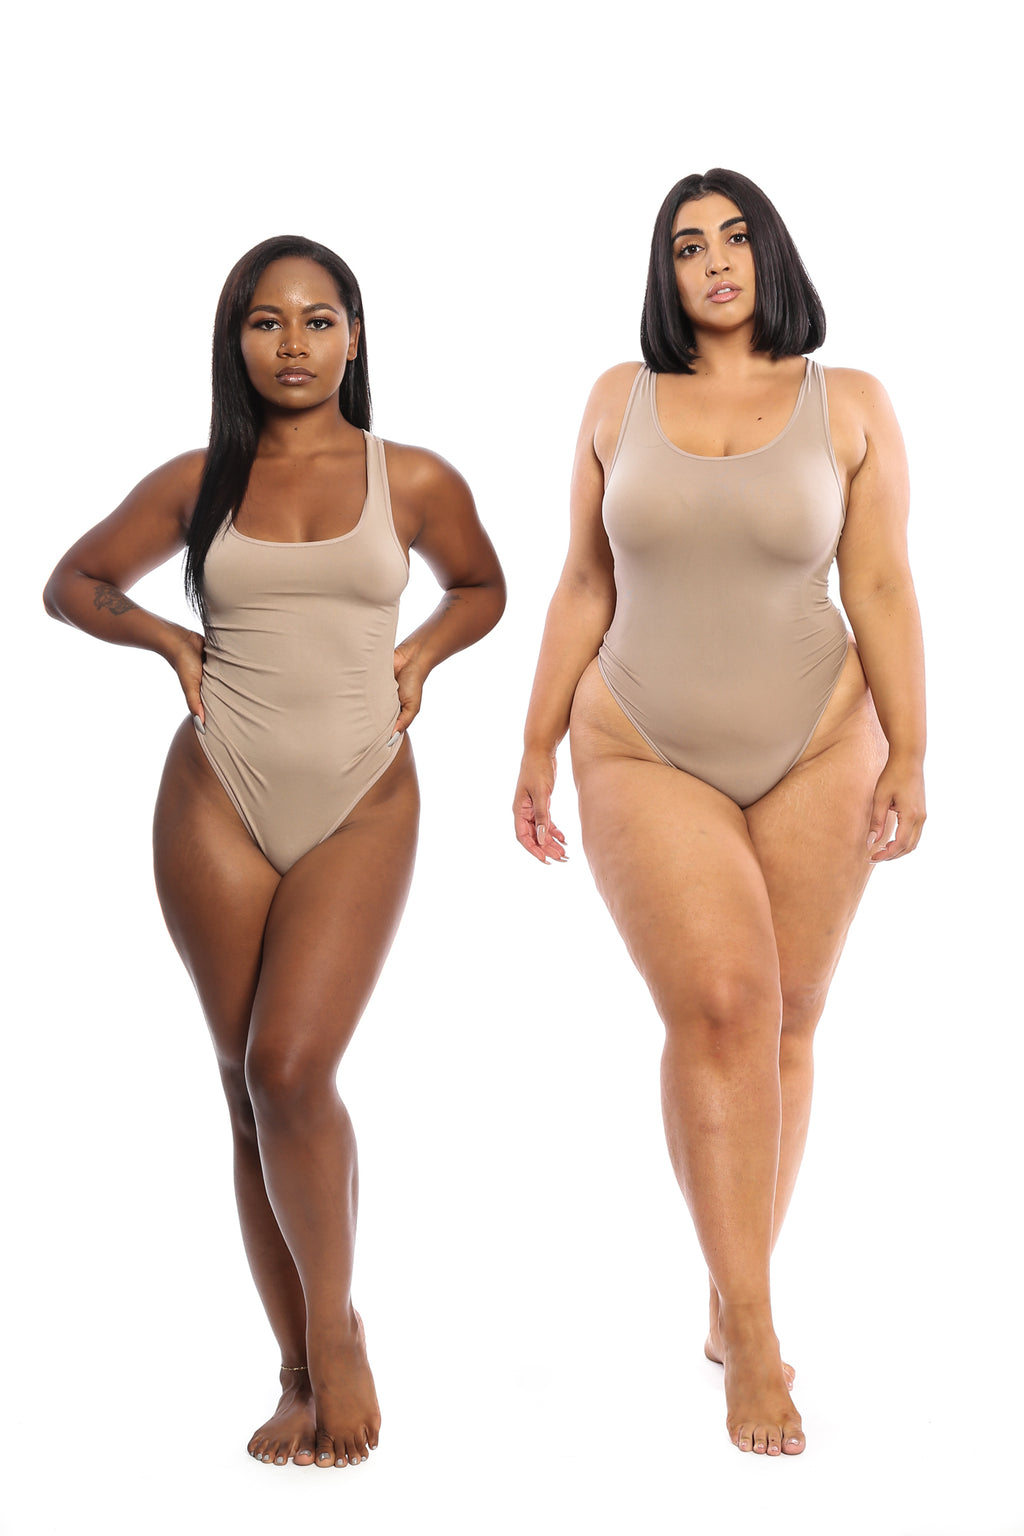 Mocha Body By Babes Thong Bodysuit w/ Tummy Control - Babes And Felines | Specializing in Fashionable Staple Pieces for Every Shape and Size (10283417034)